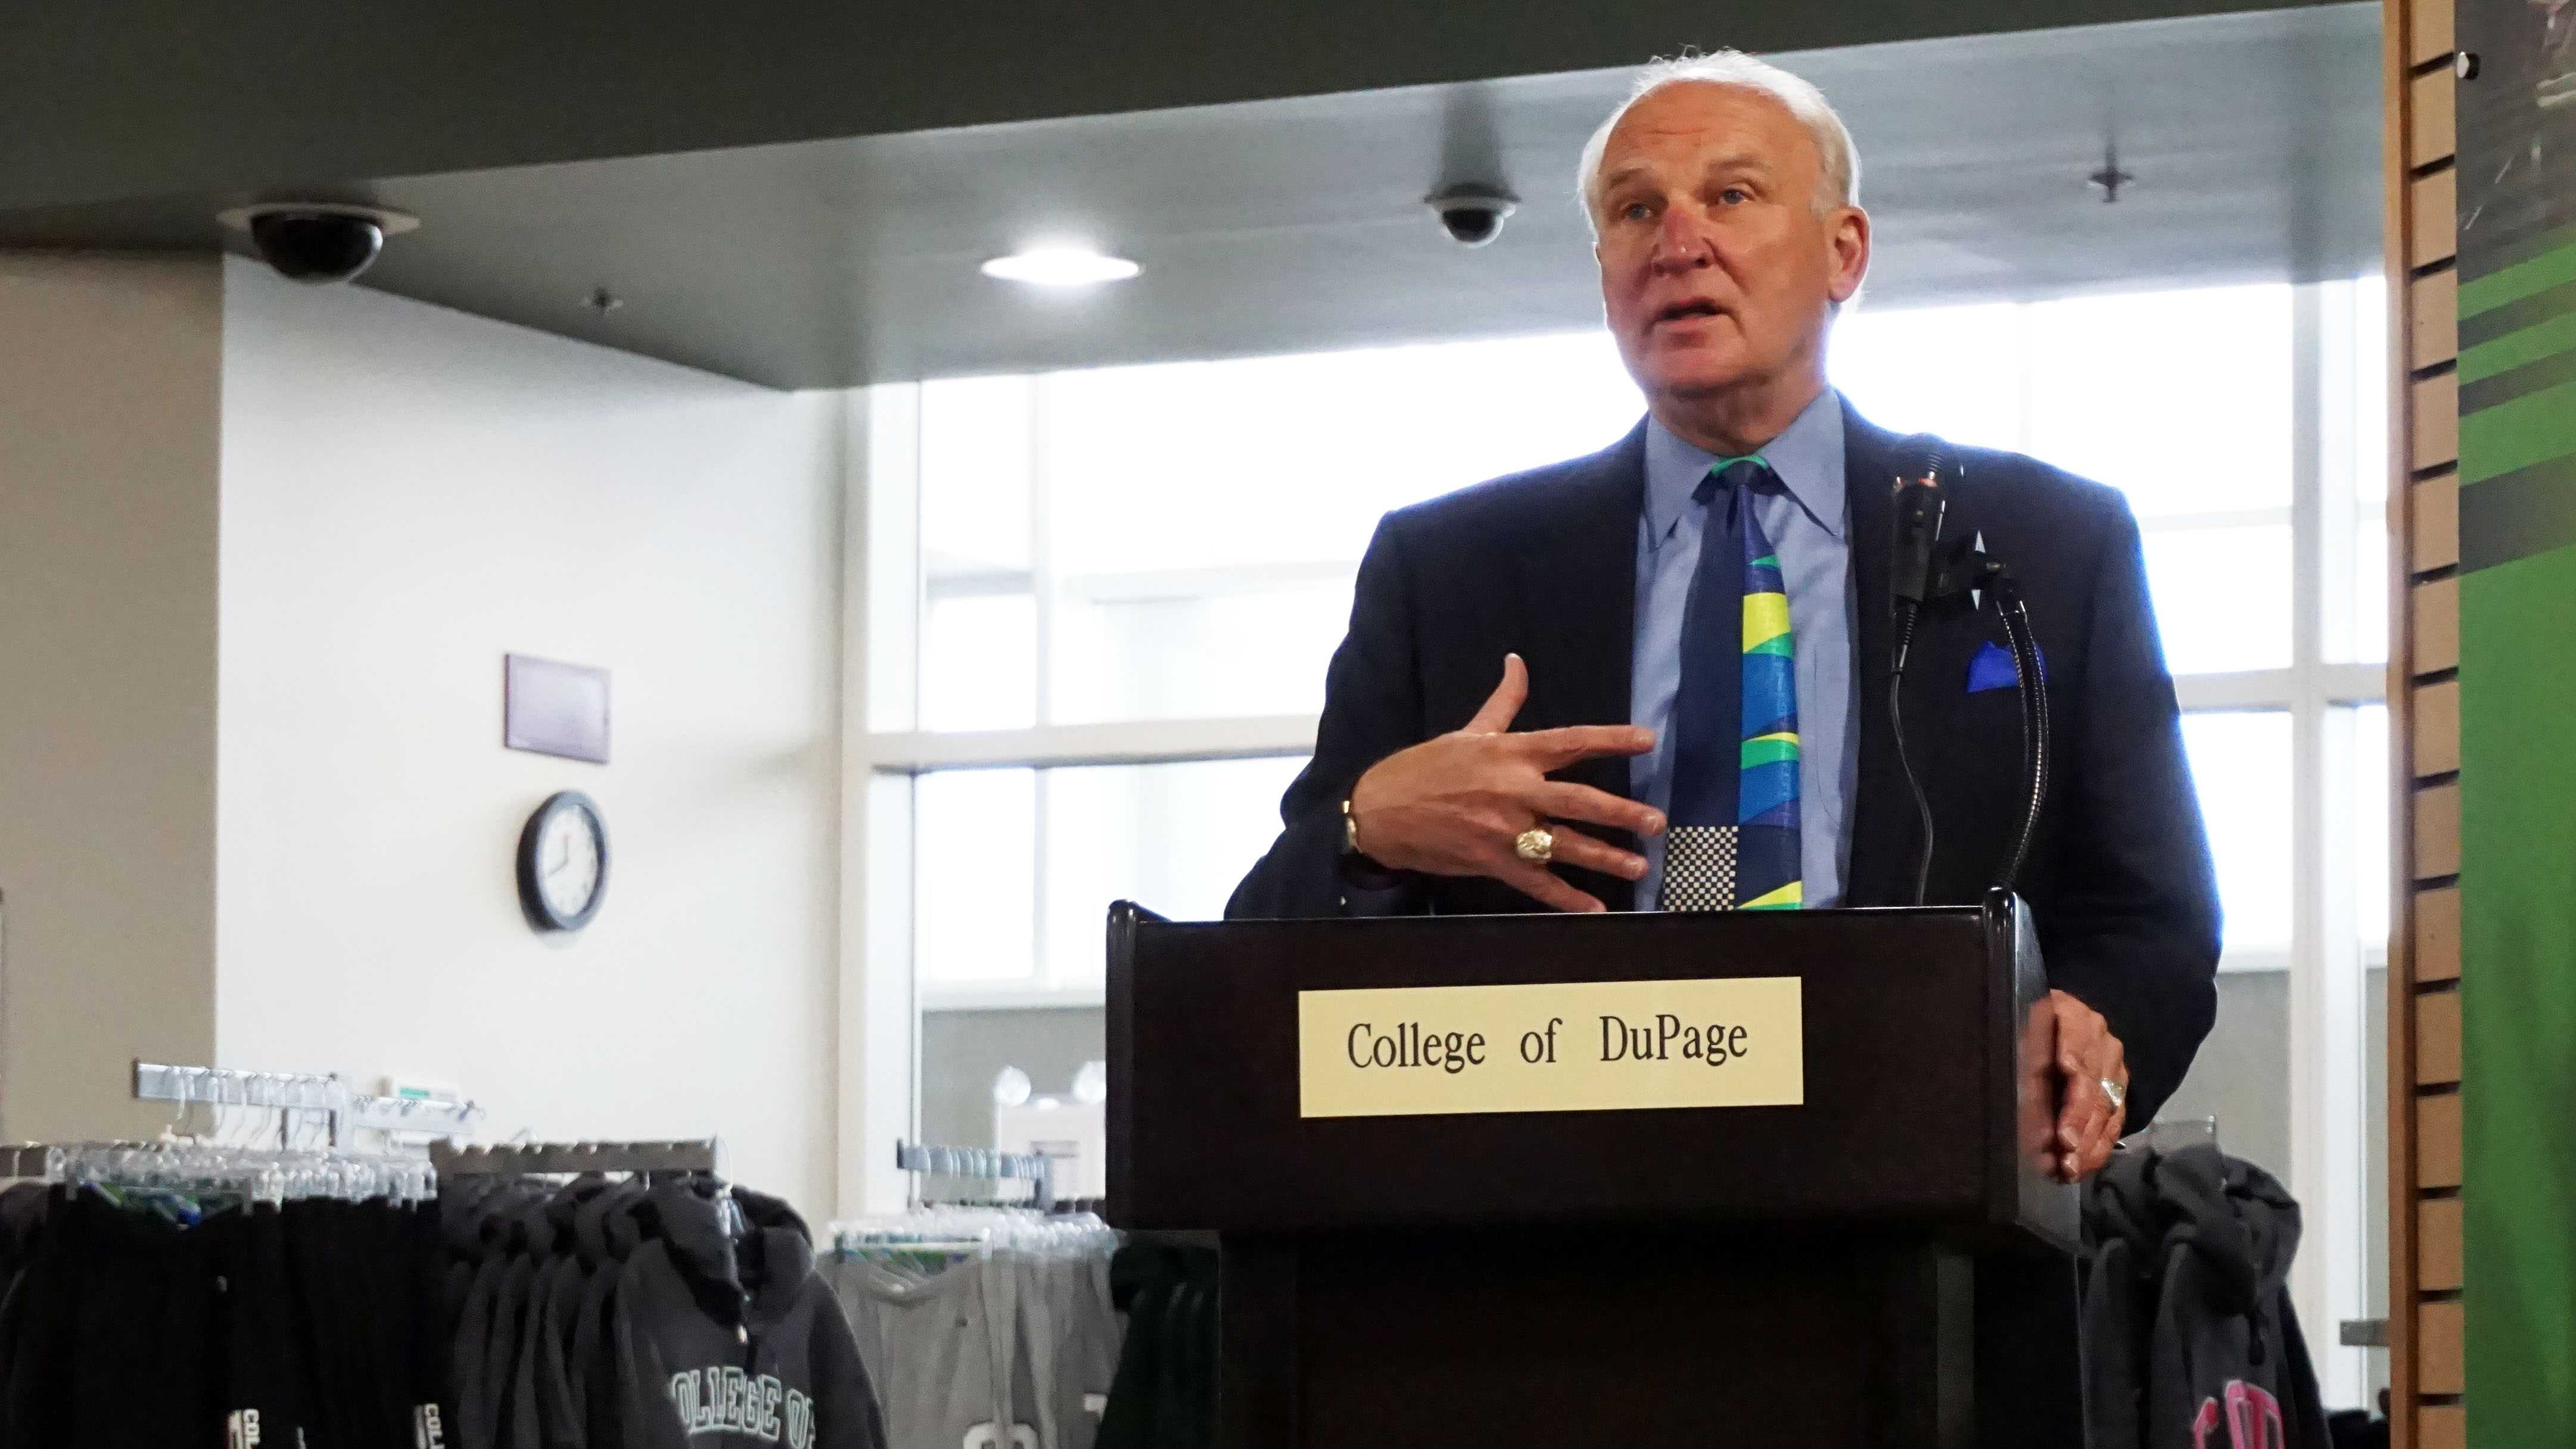 President Robert Breuder at a college event in March.